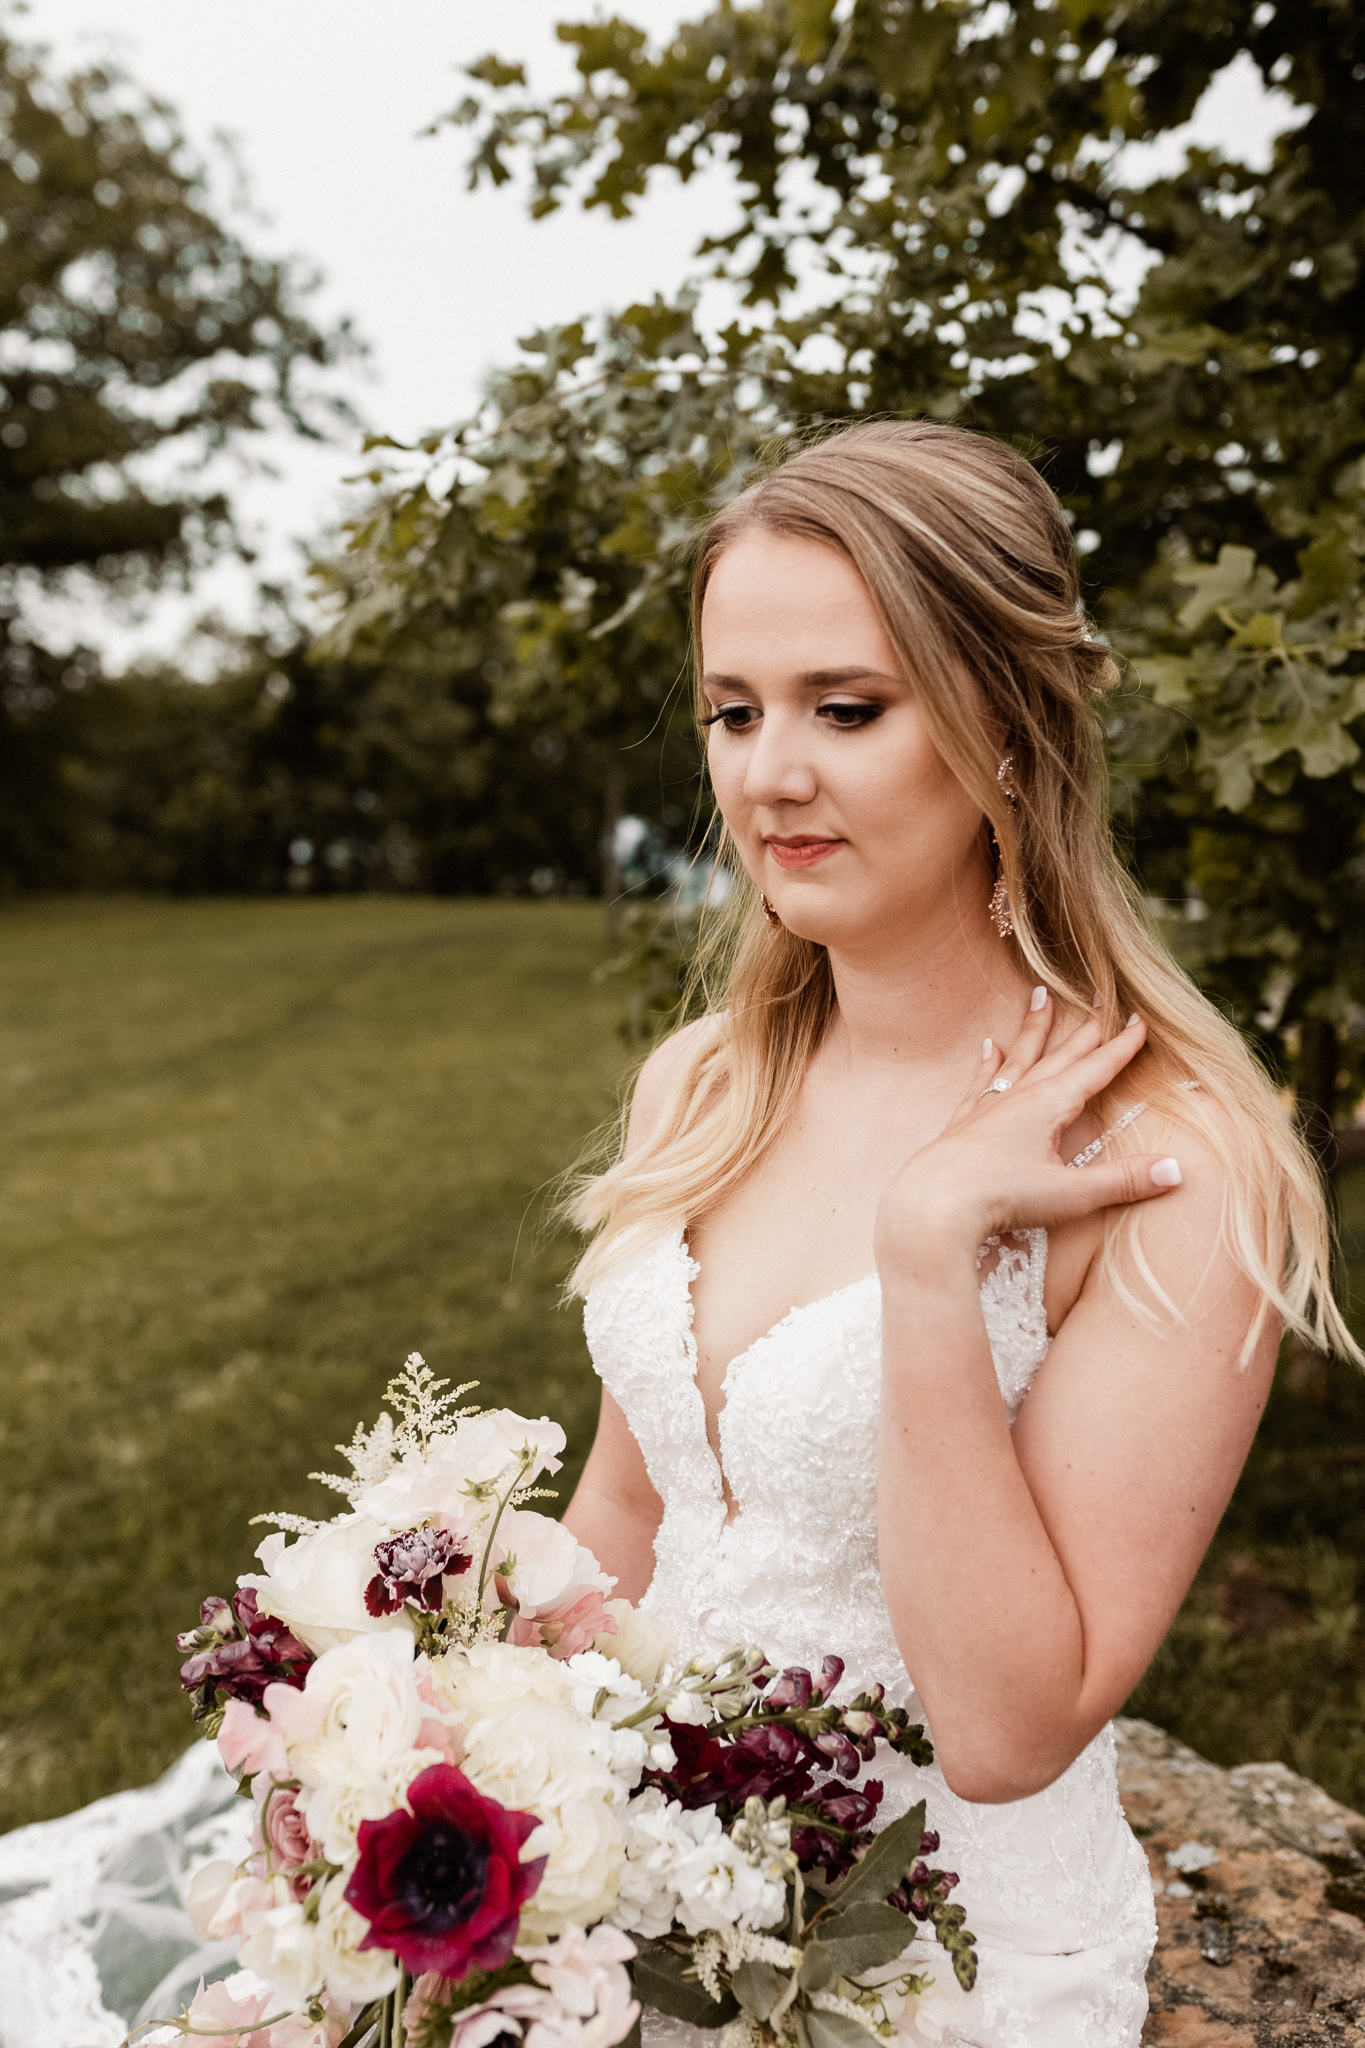 Brittany | Romantic Outdoor Bridals | Oklahoma Wedding Photographer-31.jpg